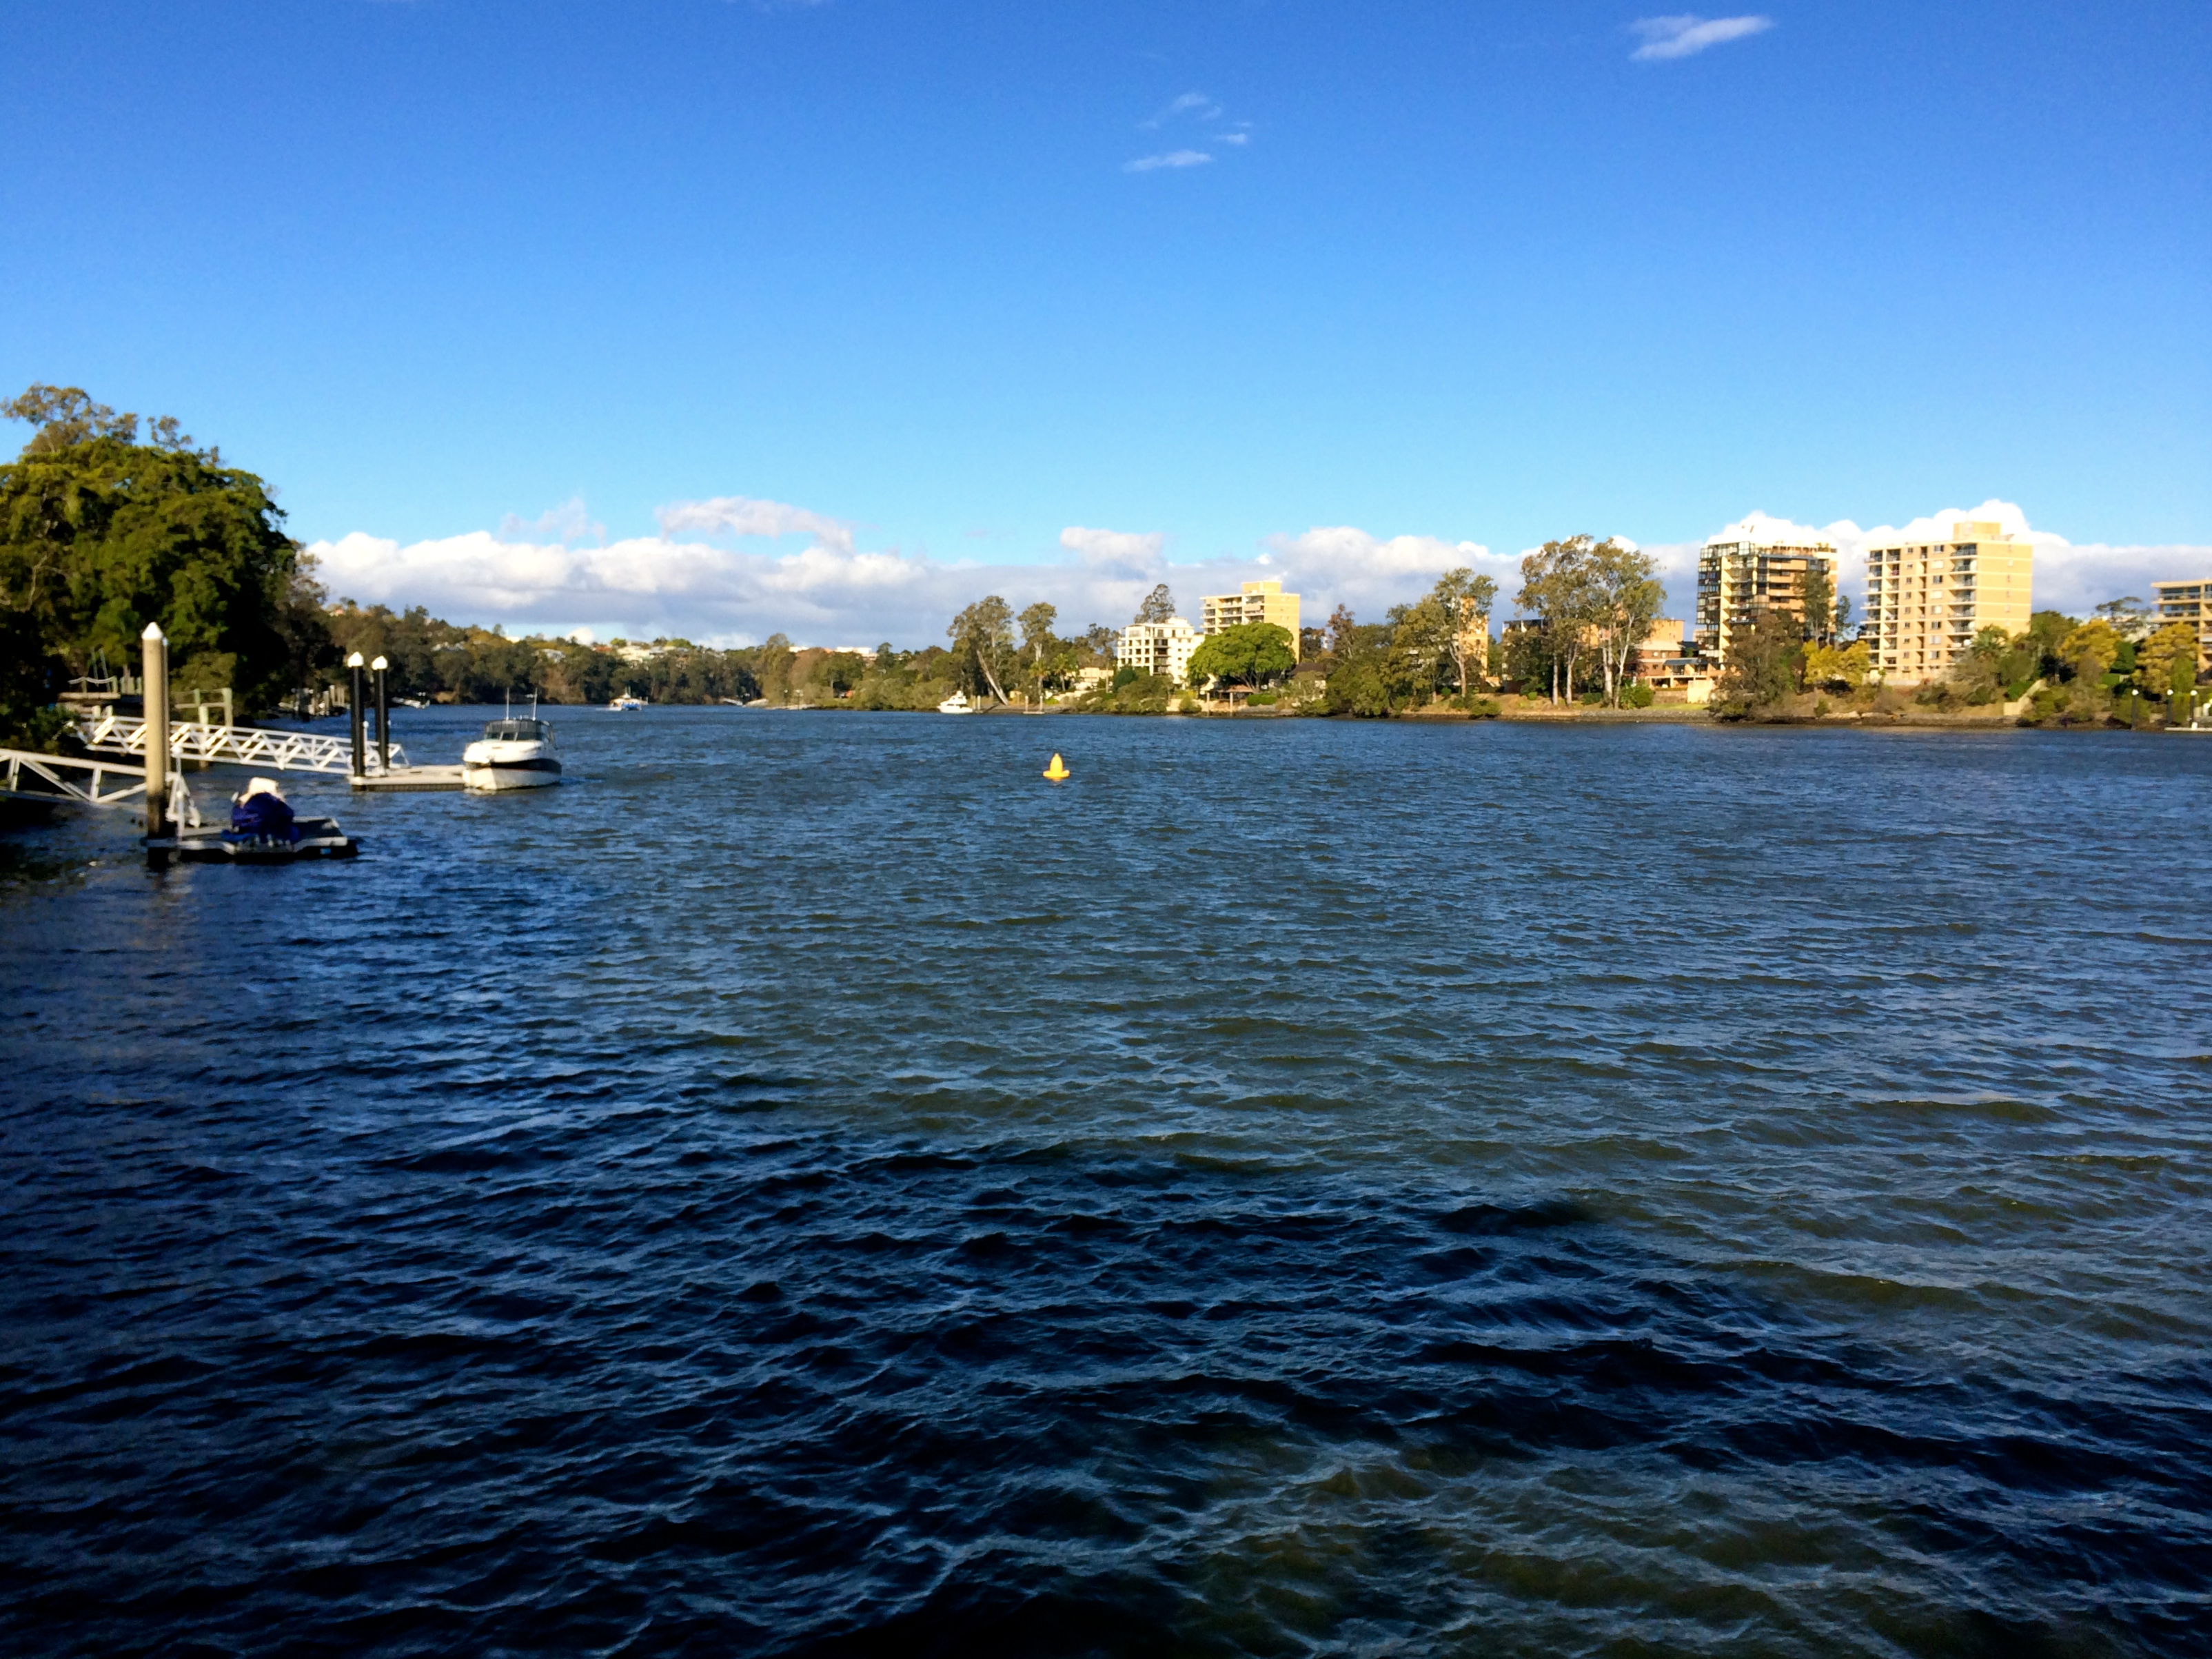 Brisbane River, West End Ferry Wharf, Recorded at 3pm on August 14th 2014.